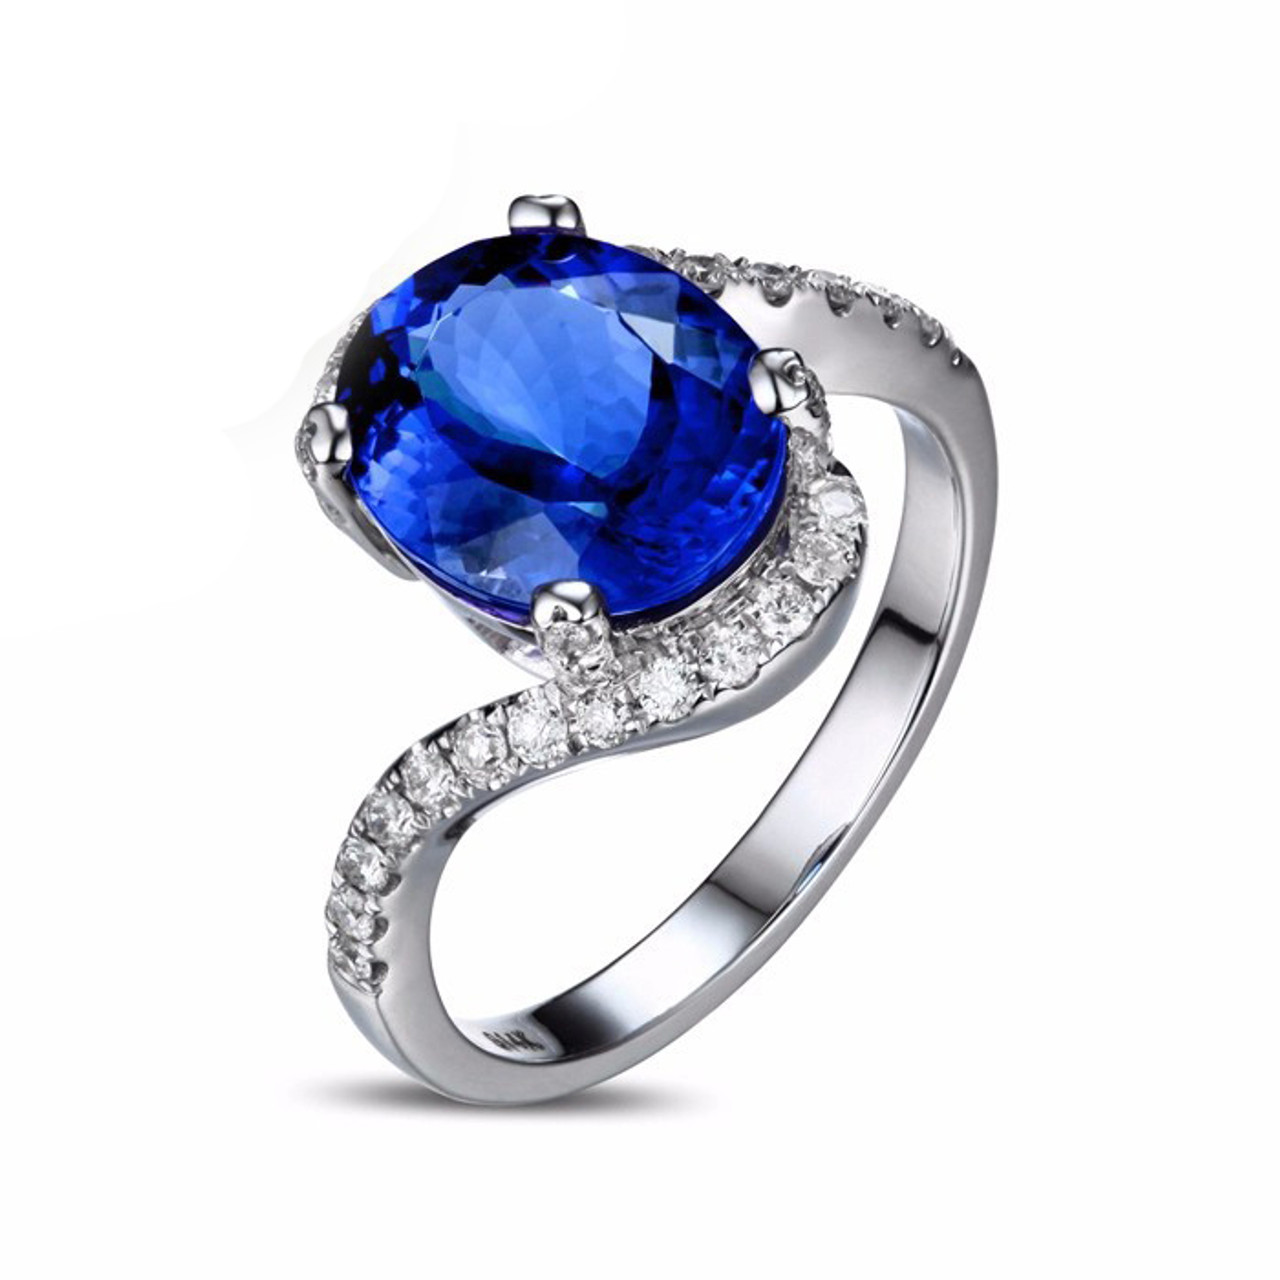 tanzanite diamonds of is the color my favorite and perfect stone jewlery pin diamond beautiful this